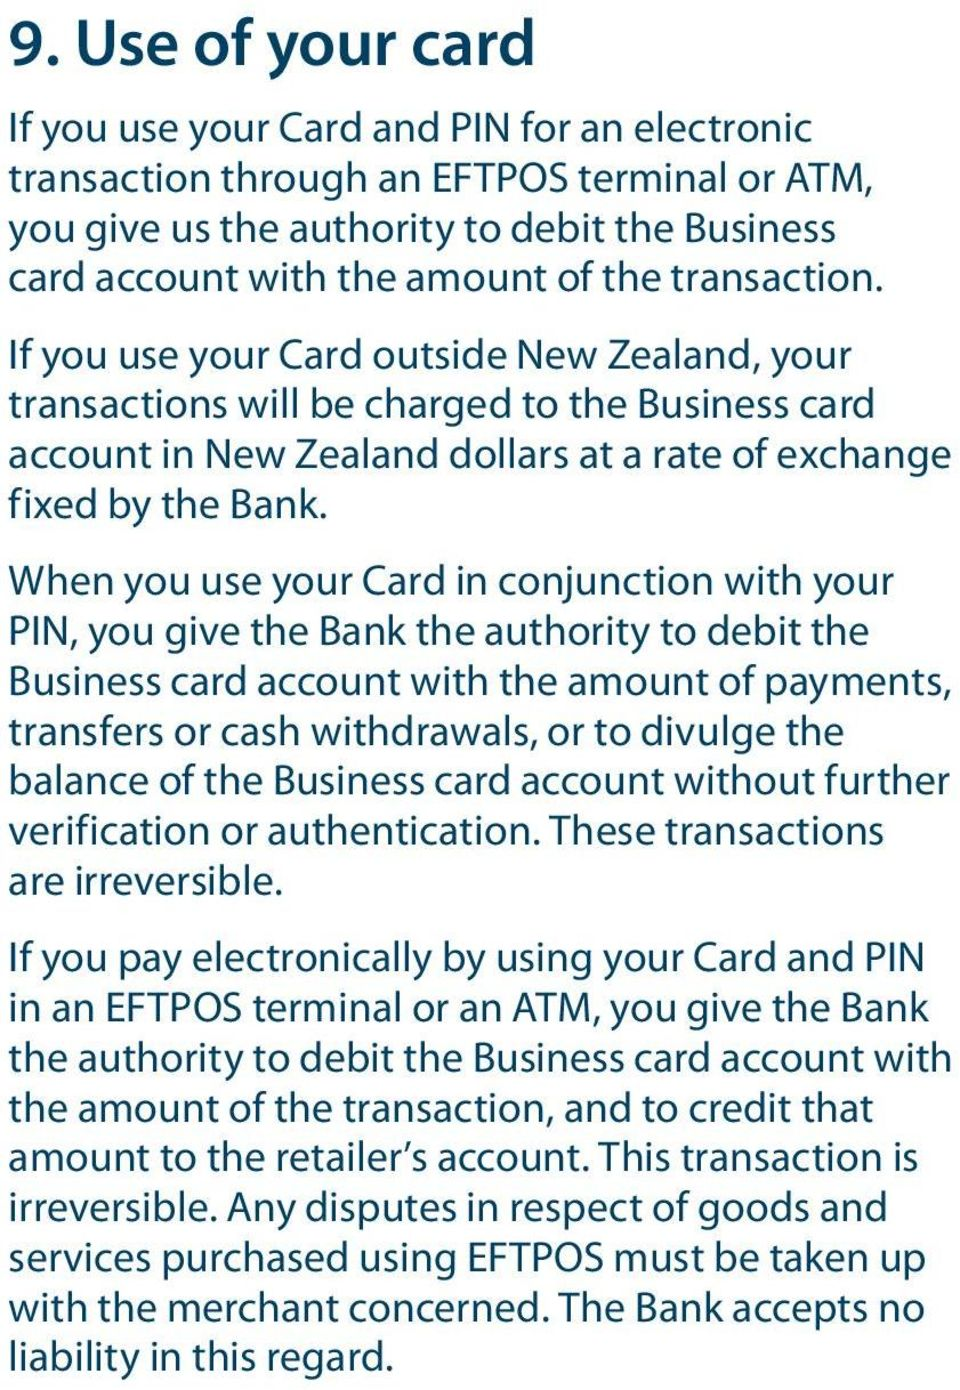 When you use your Card in conjunction with your PIN, you give the Bank the authority to debit the Business card account with the amount of payments, transfers or cash withdrawals, or to divulge the